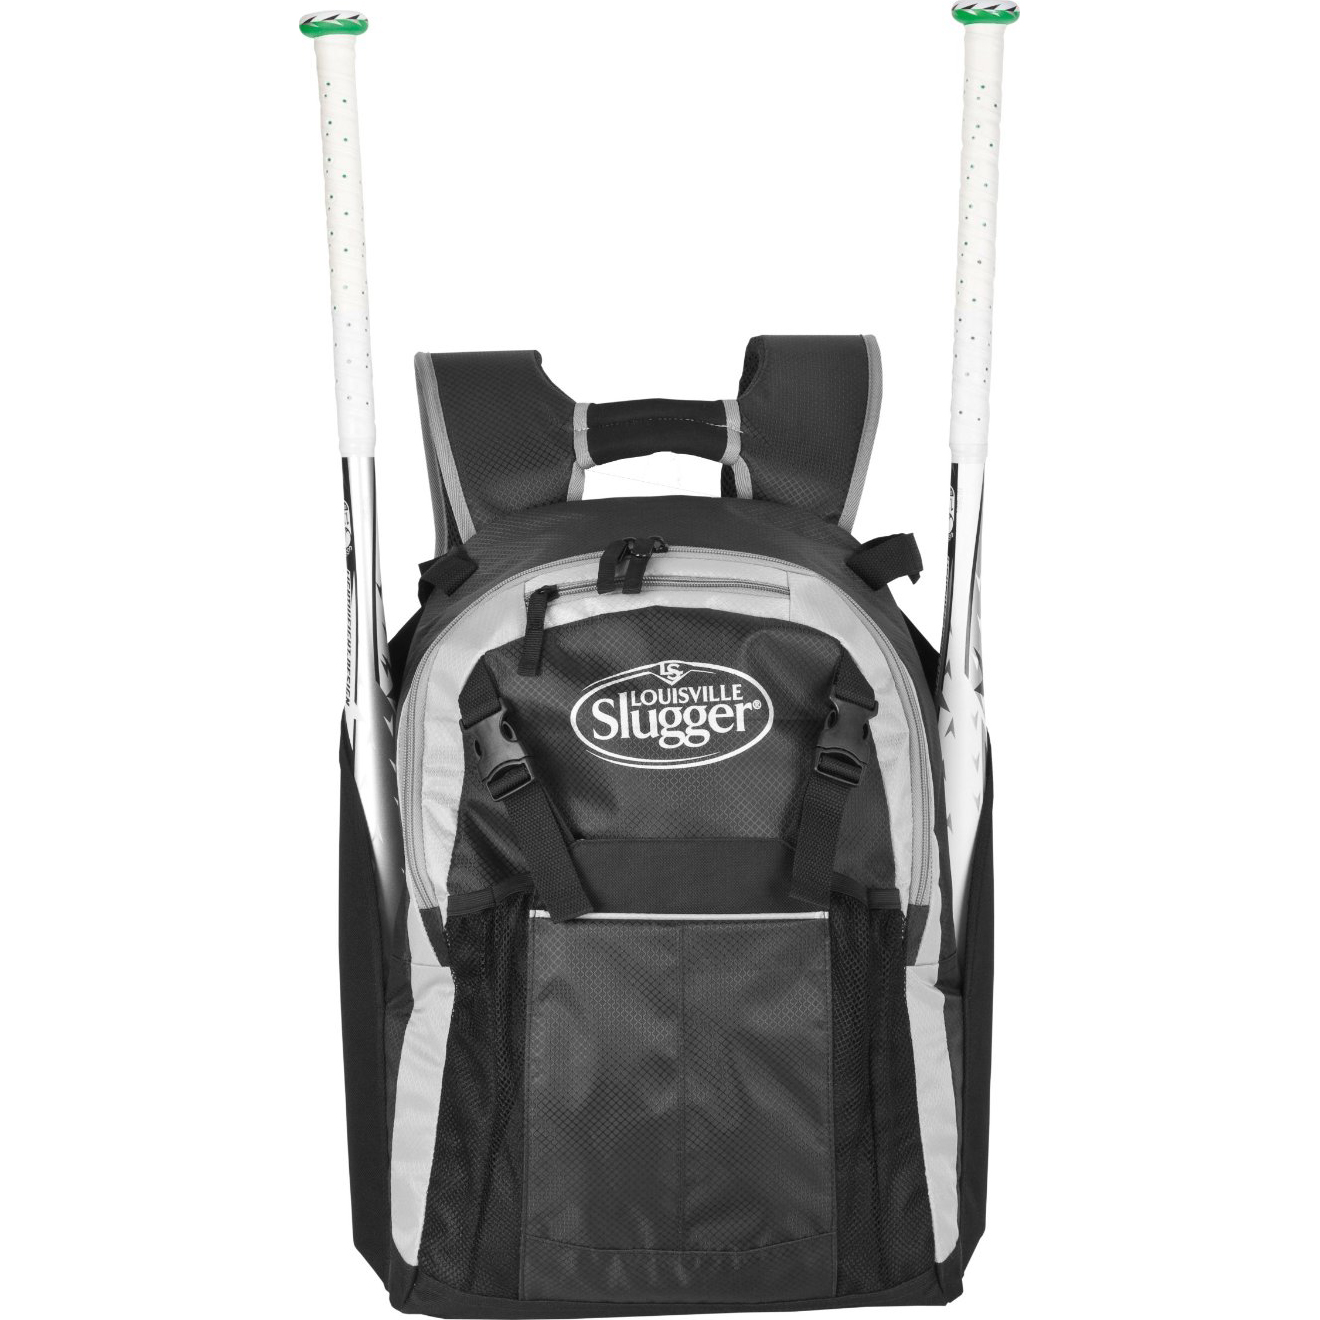 Louisville Slugger EB 2014 Series 5 Stick Baseball Bag - Black